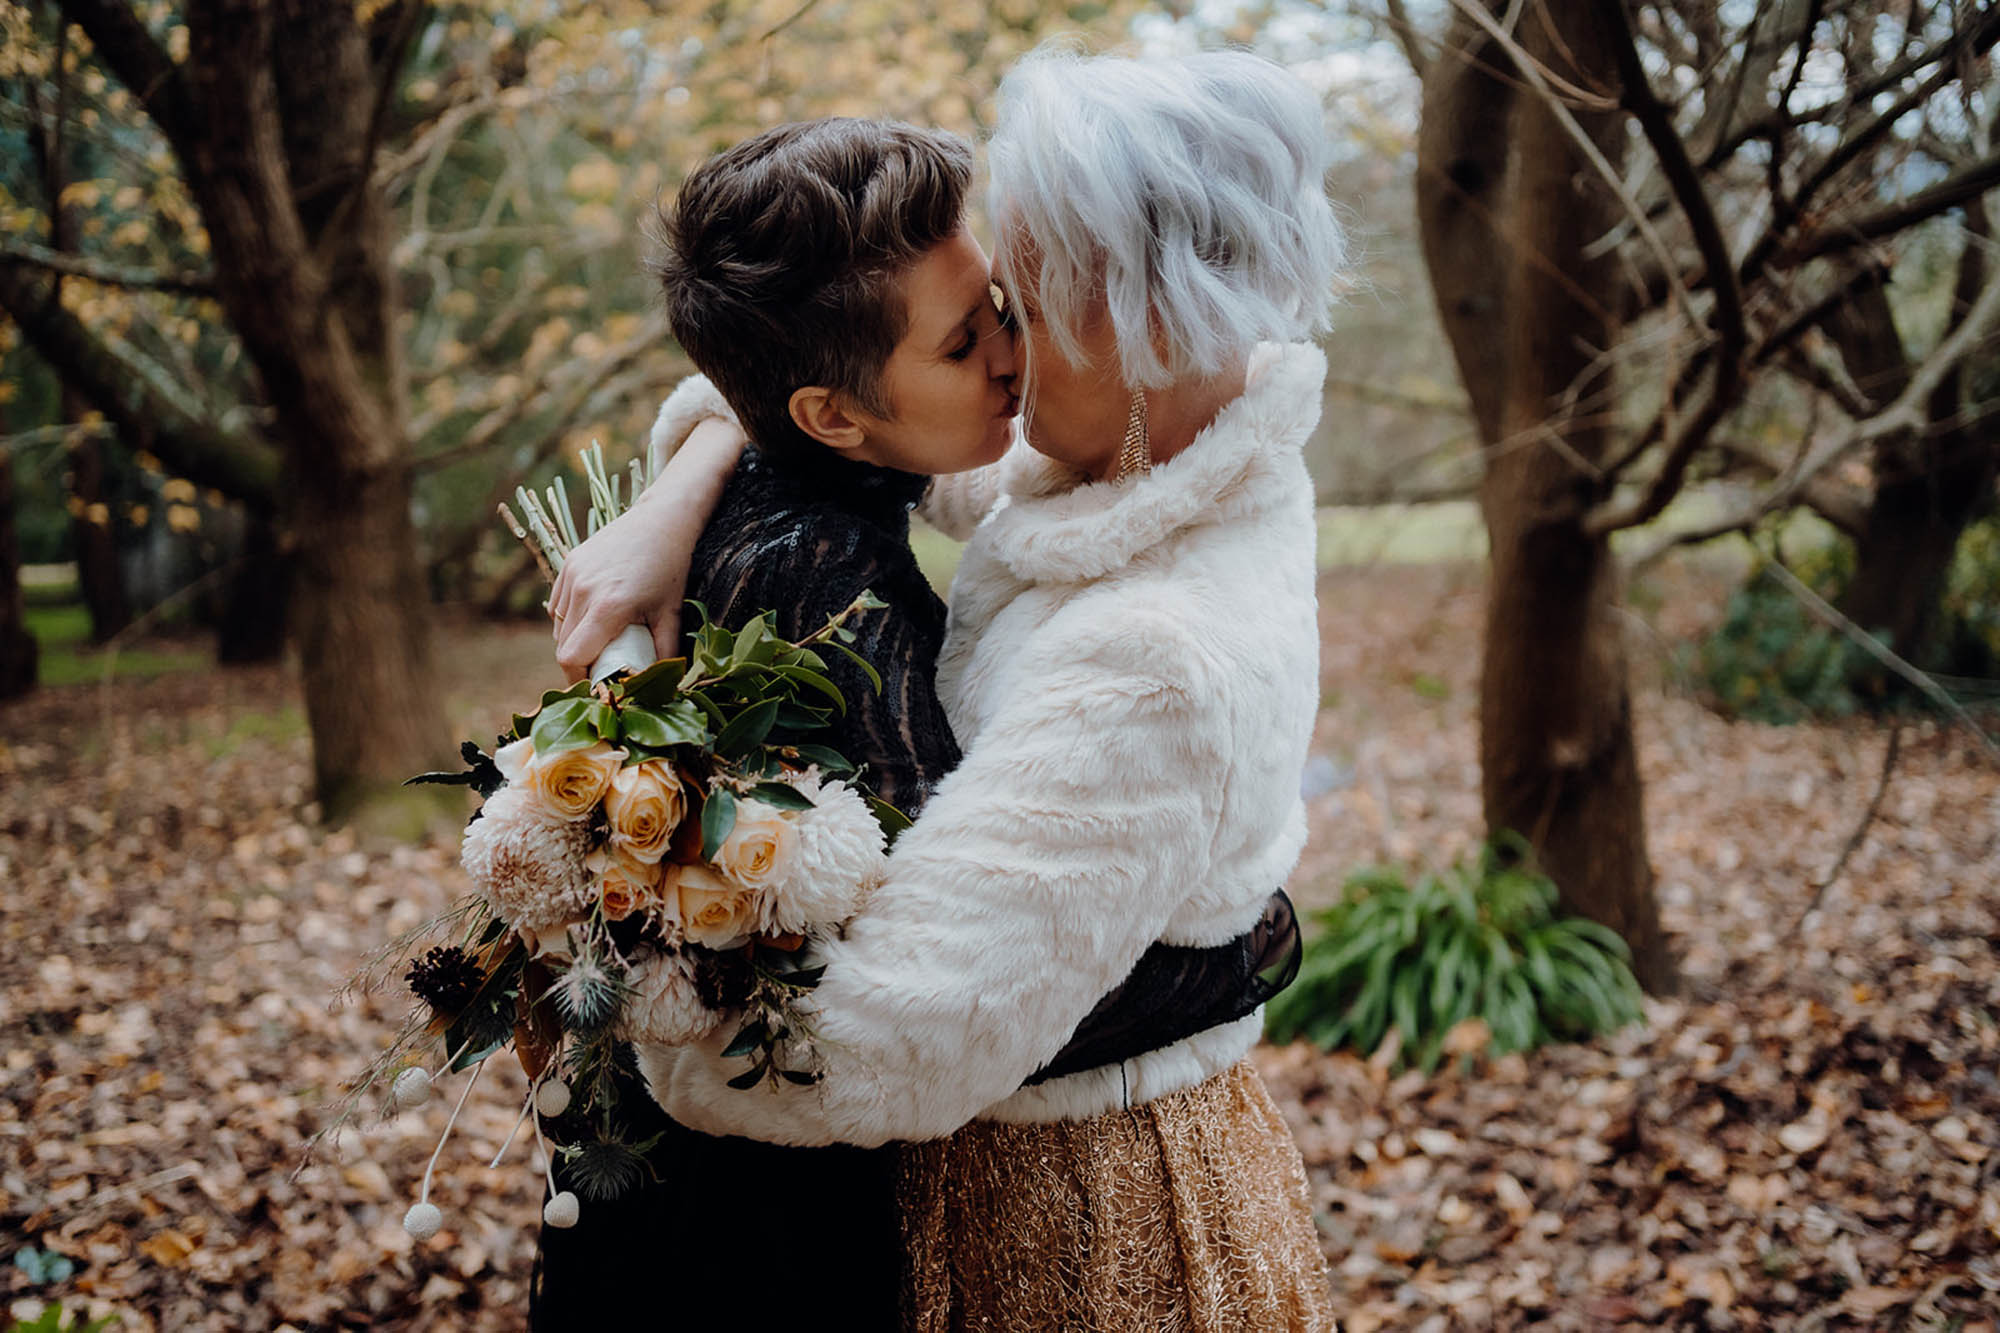 Winter Wedding Inspiration - Lesbian Wedding Inspiration - Melbourne Weddings